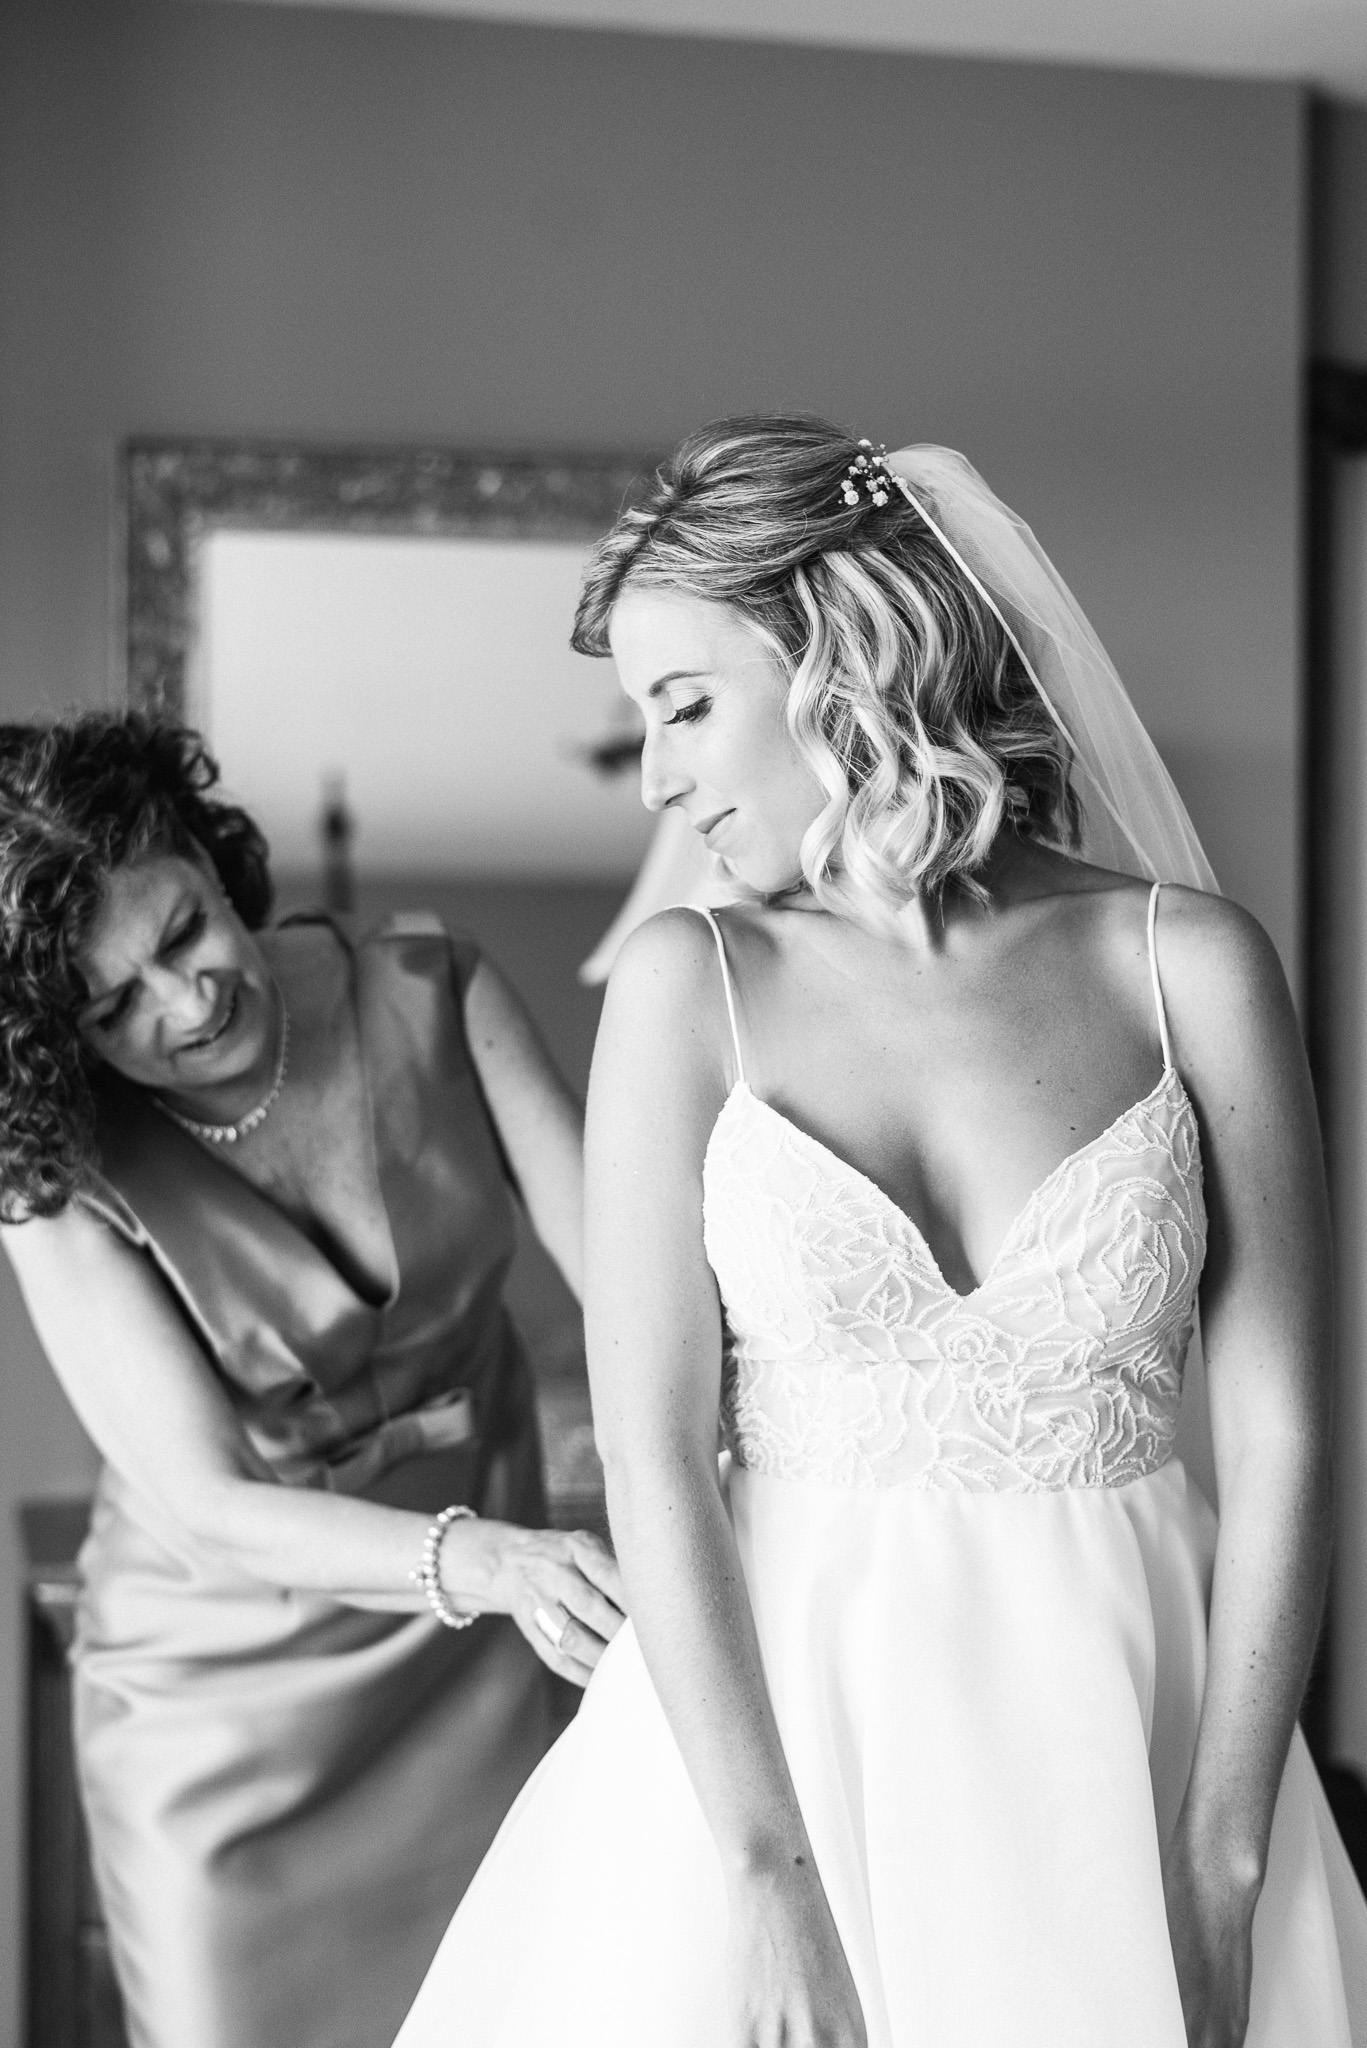 Bride getting ready photos at Vineyard Estate House at Cave Spring Vineyard by Jenn Kavanagh Photography